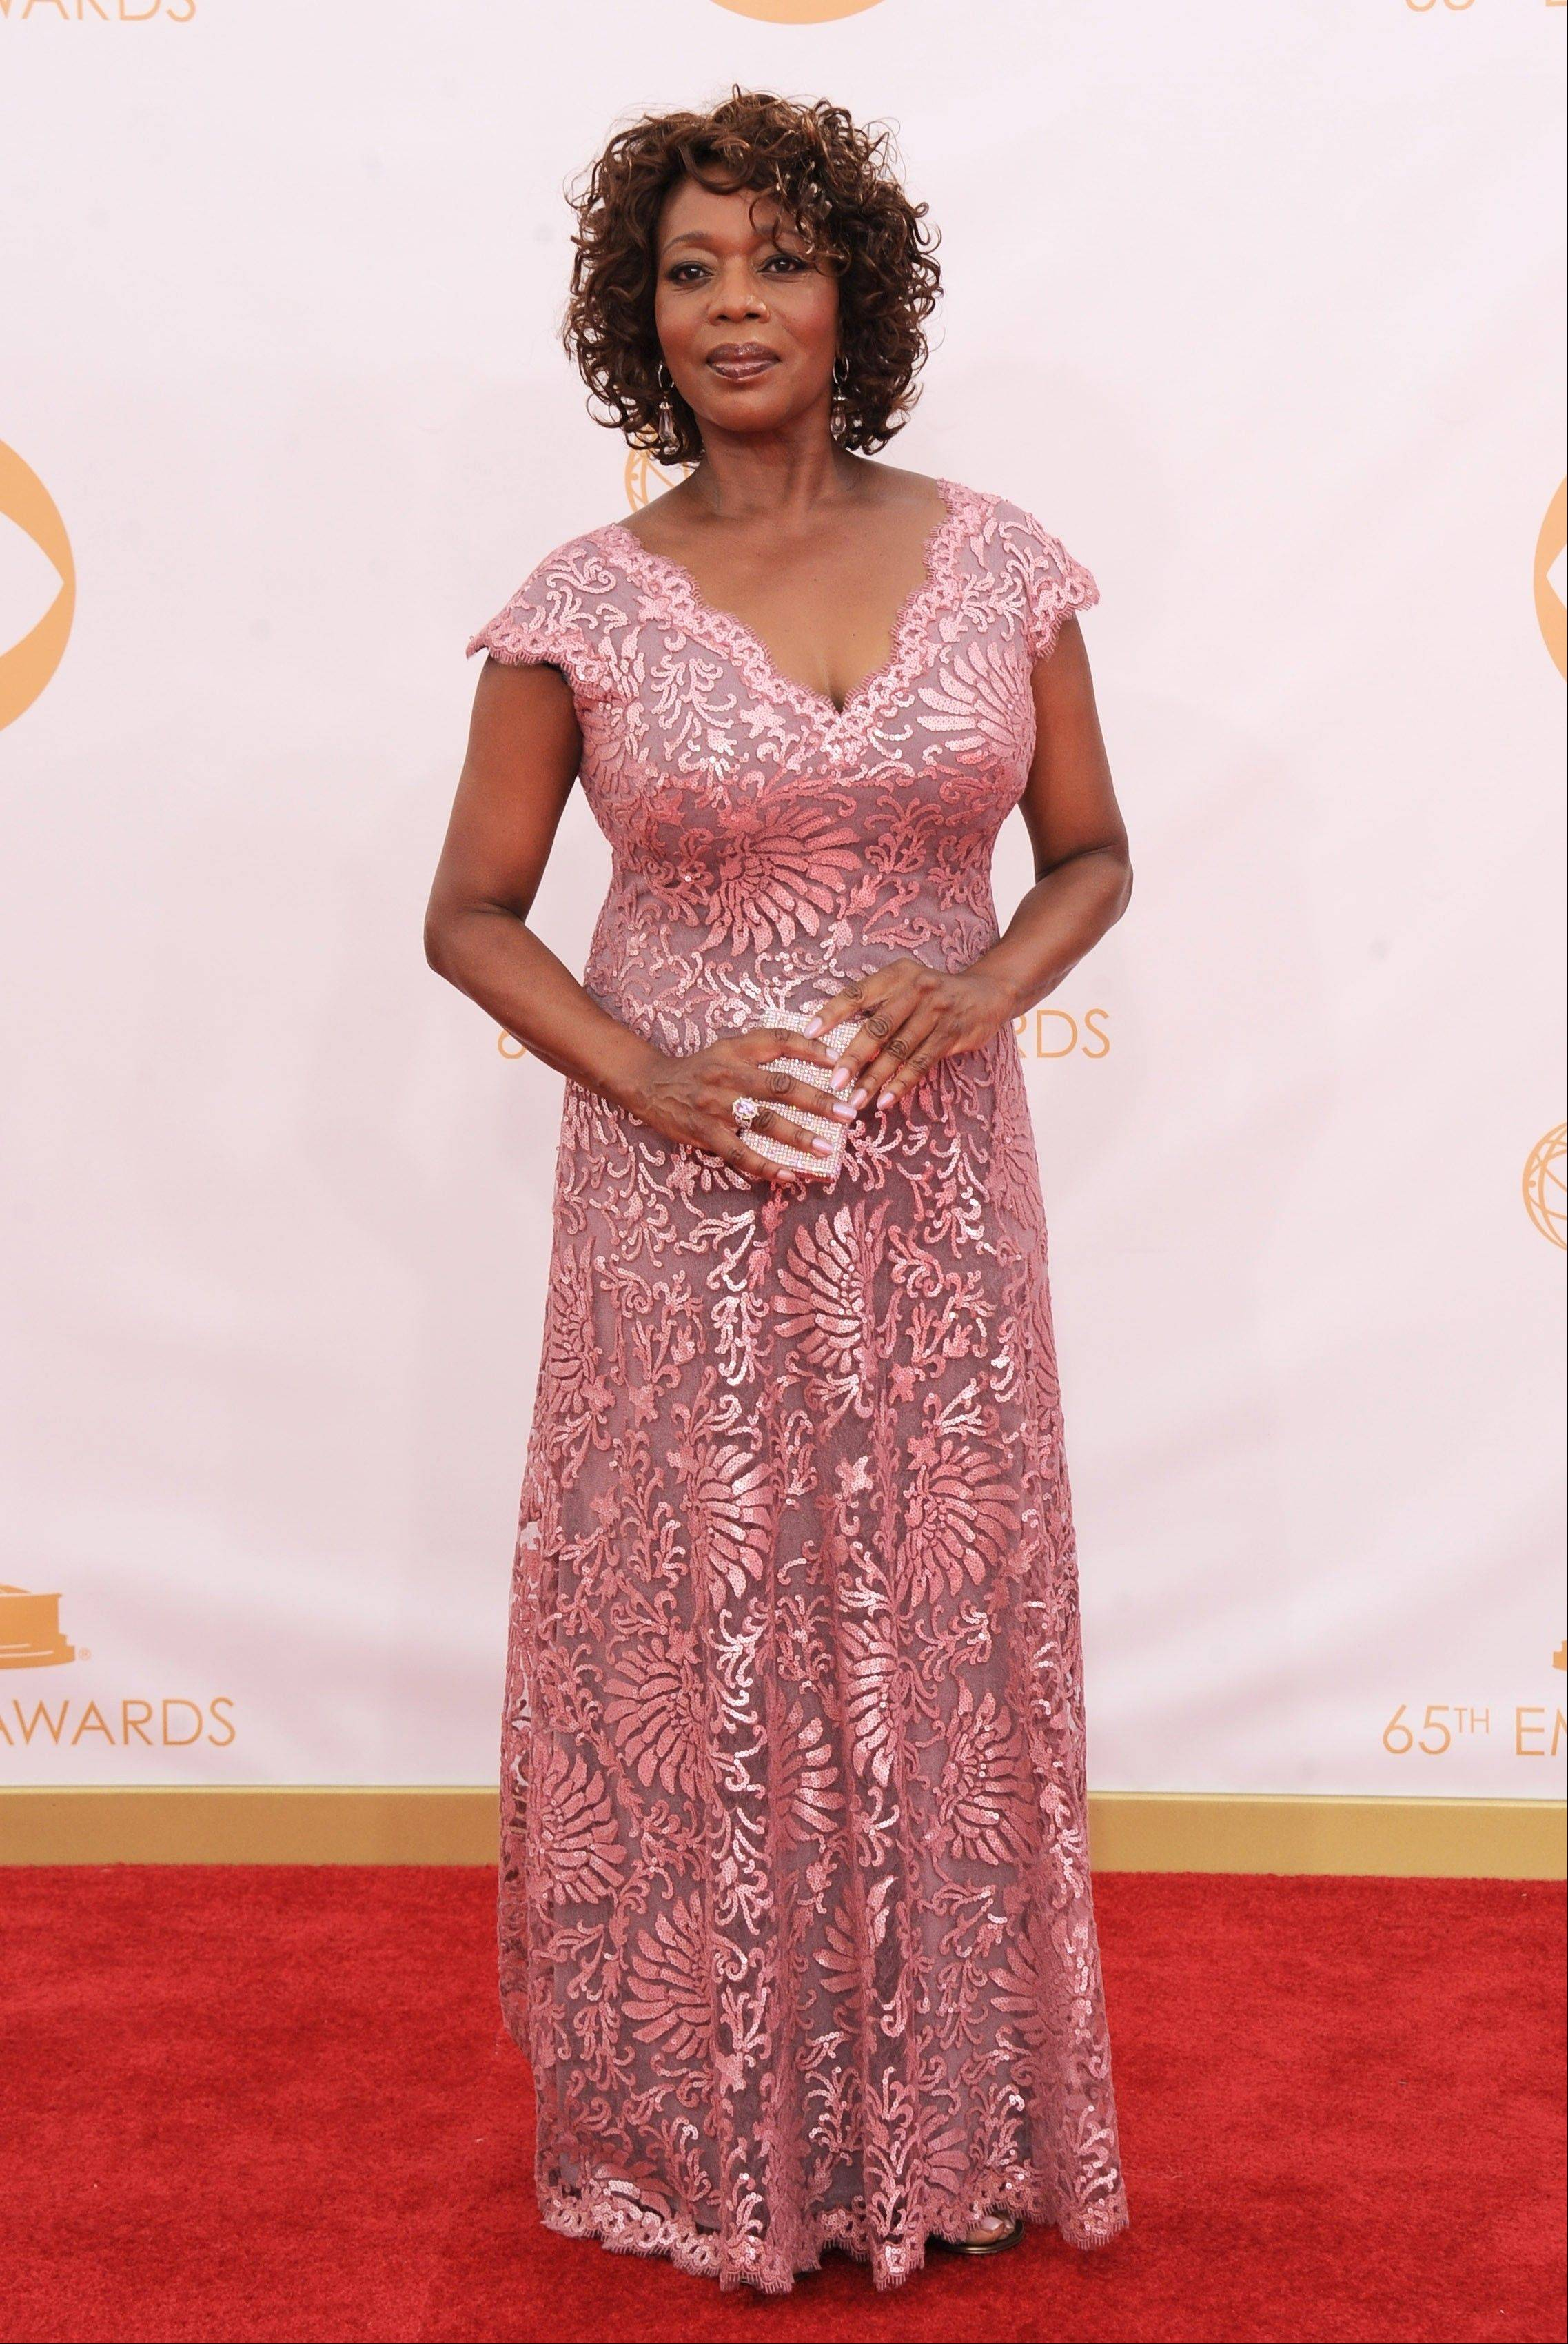 Alfre Woodard arrives at the 65th Primetime Emmy Awards at Nokia Theatre on Sunday Sept. 22, 2013, in Los Angeles.